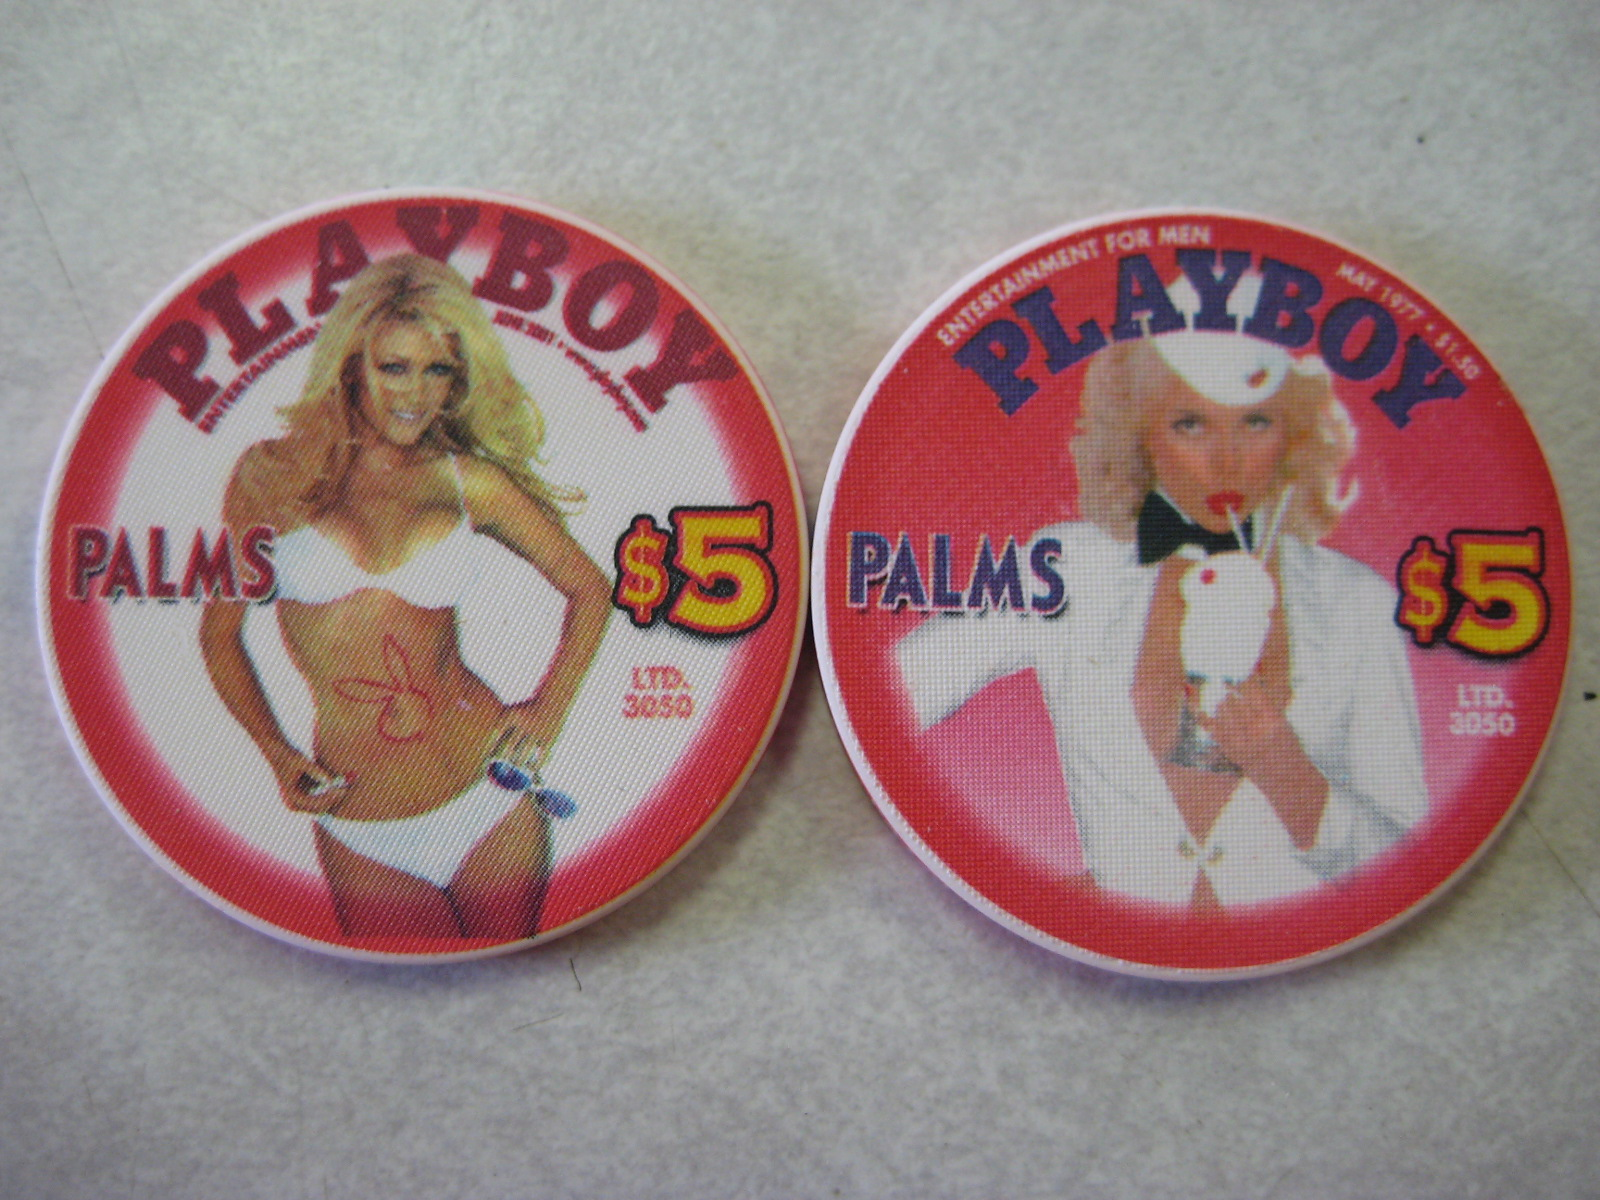 Playboy Covers $5 Chips 1977 2001